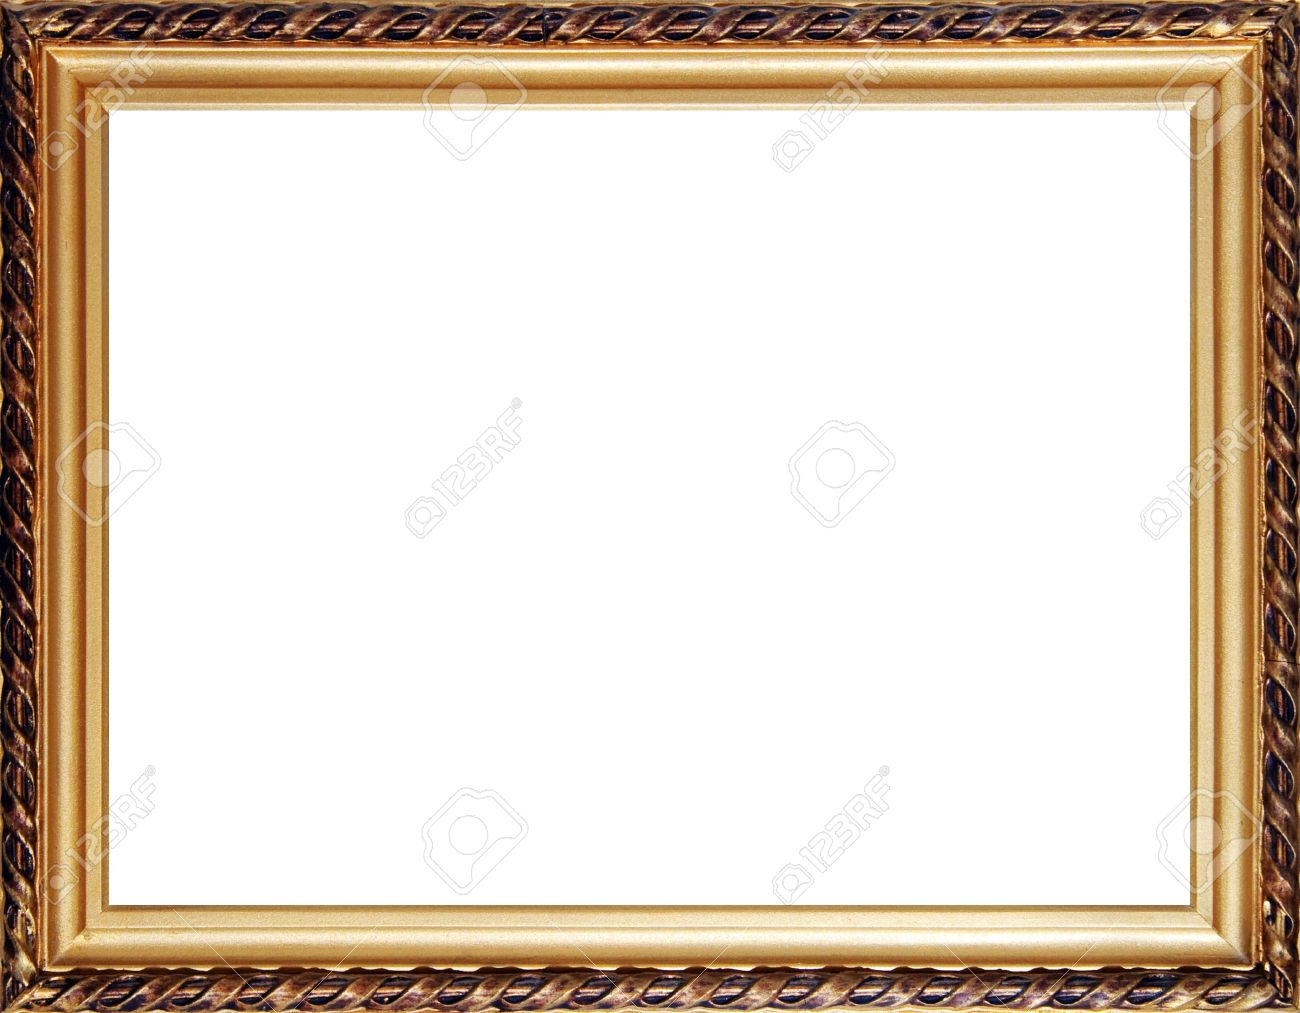 Old Russian Style Wooden Photo Frame With Stucco Moulding Isolated ...